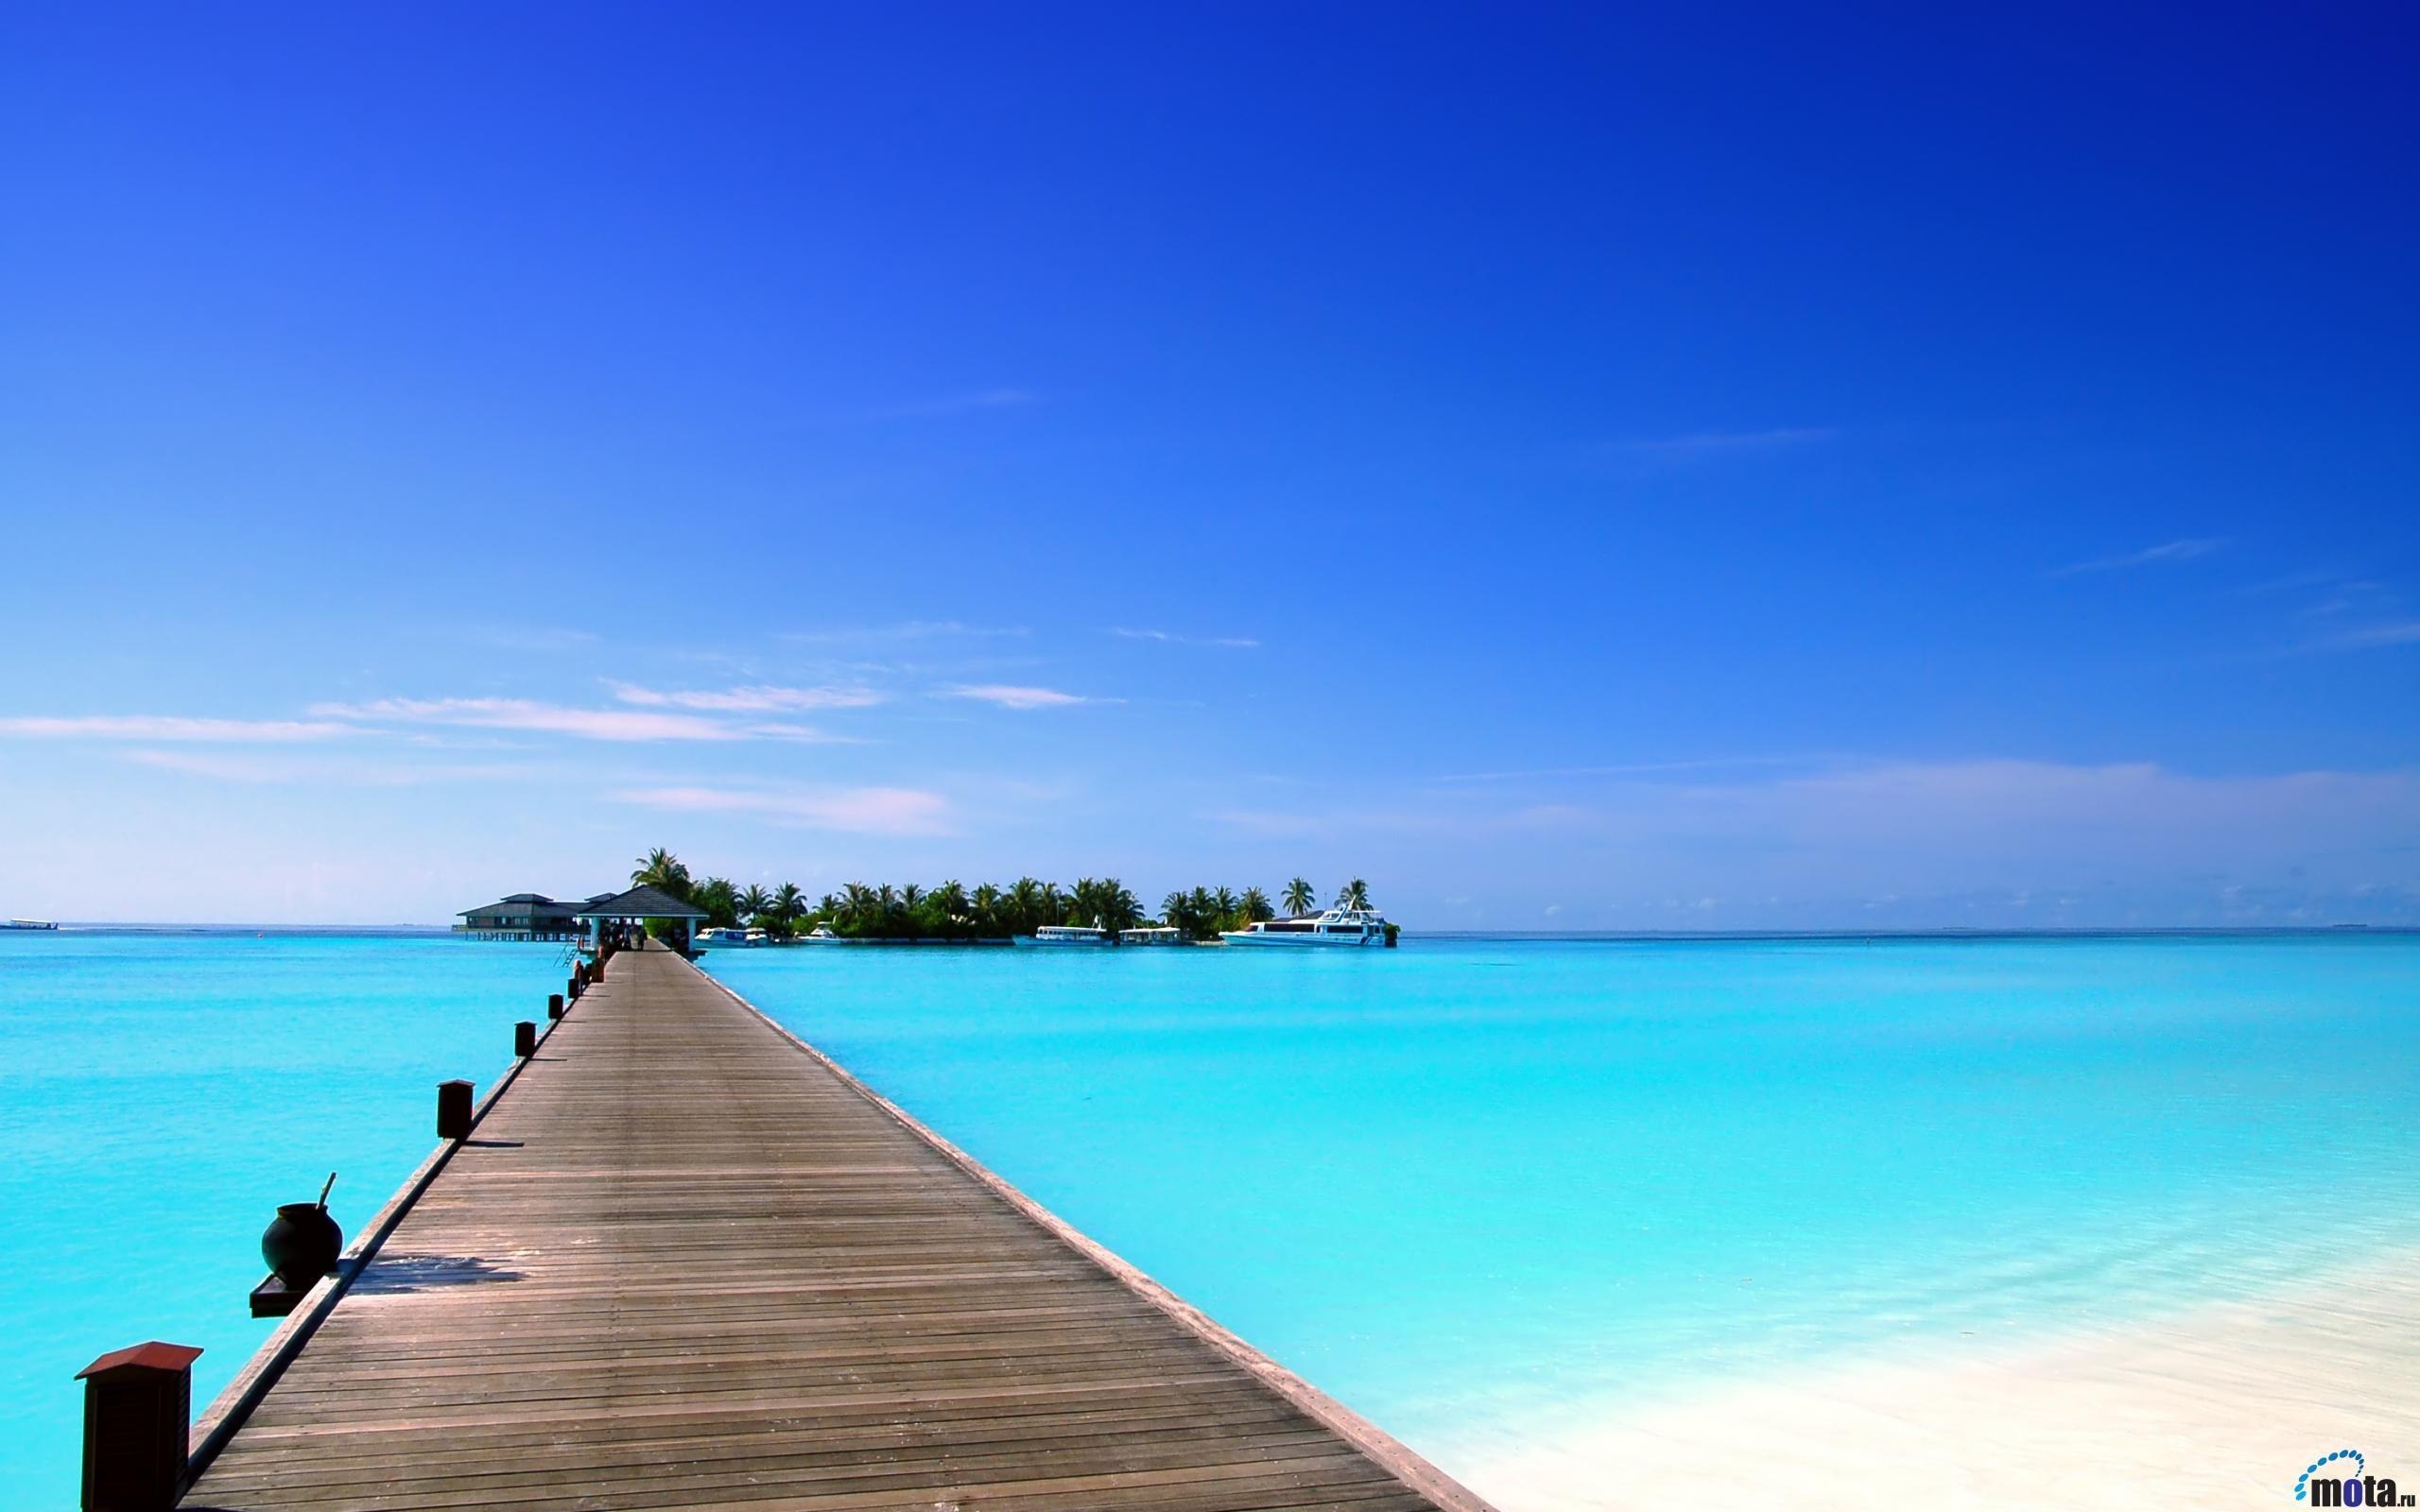 Desktop wallpapers Sun Island hotel, Maldives islands.